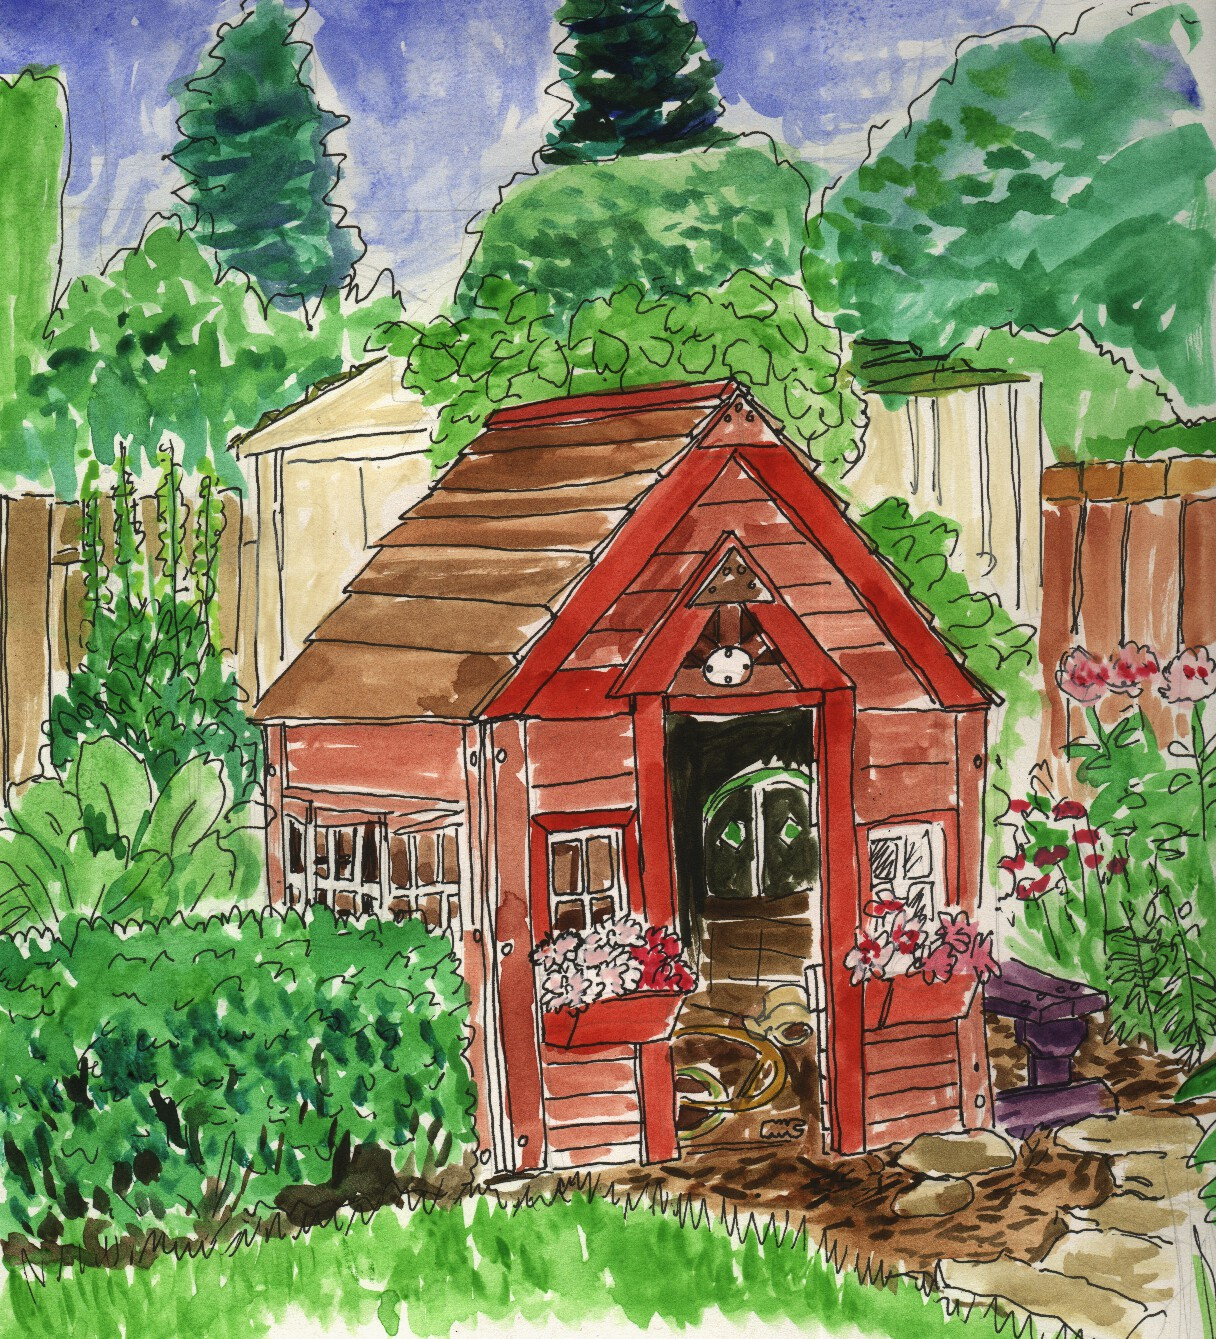 My house with garden drawing for kids - Garden House Drawings Garage Drawing Myhousehkcom